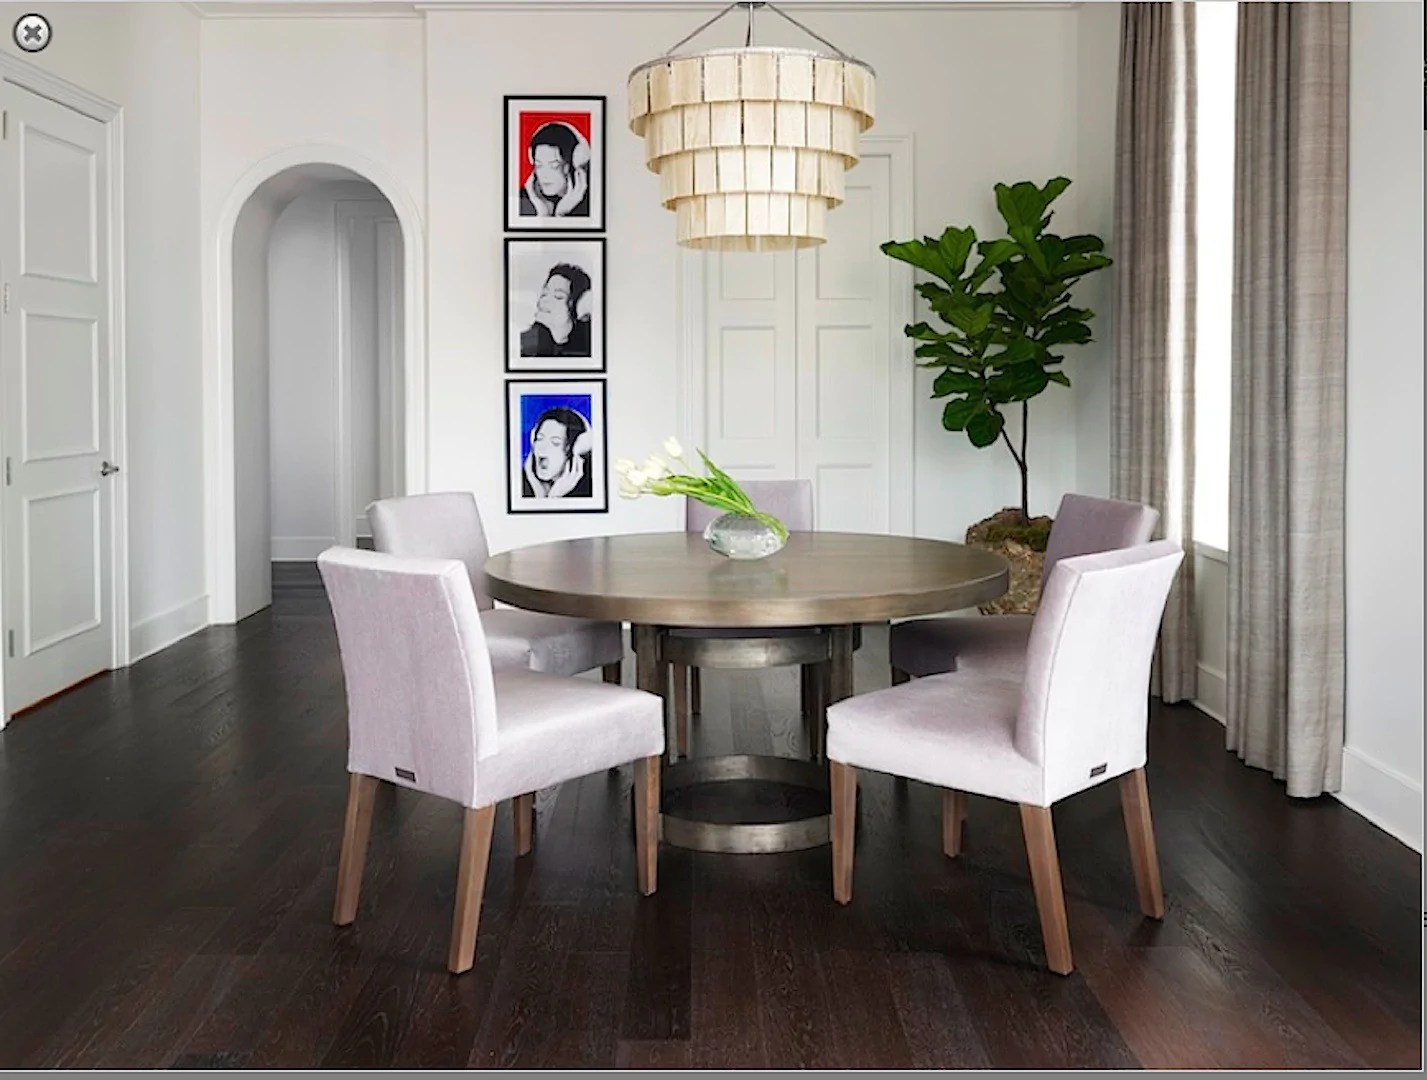 Industrial Modern Round Dining Table With Upholstered Chairs Mortise Tenon